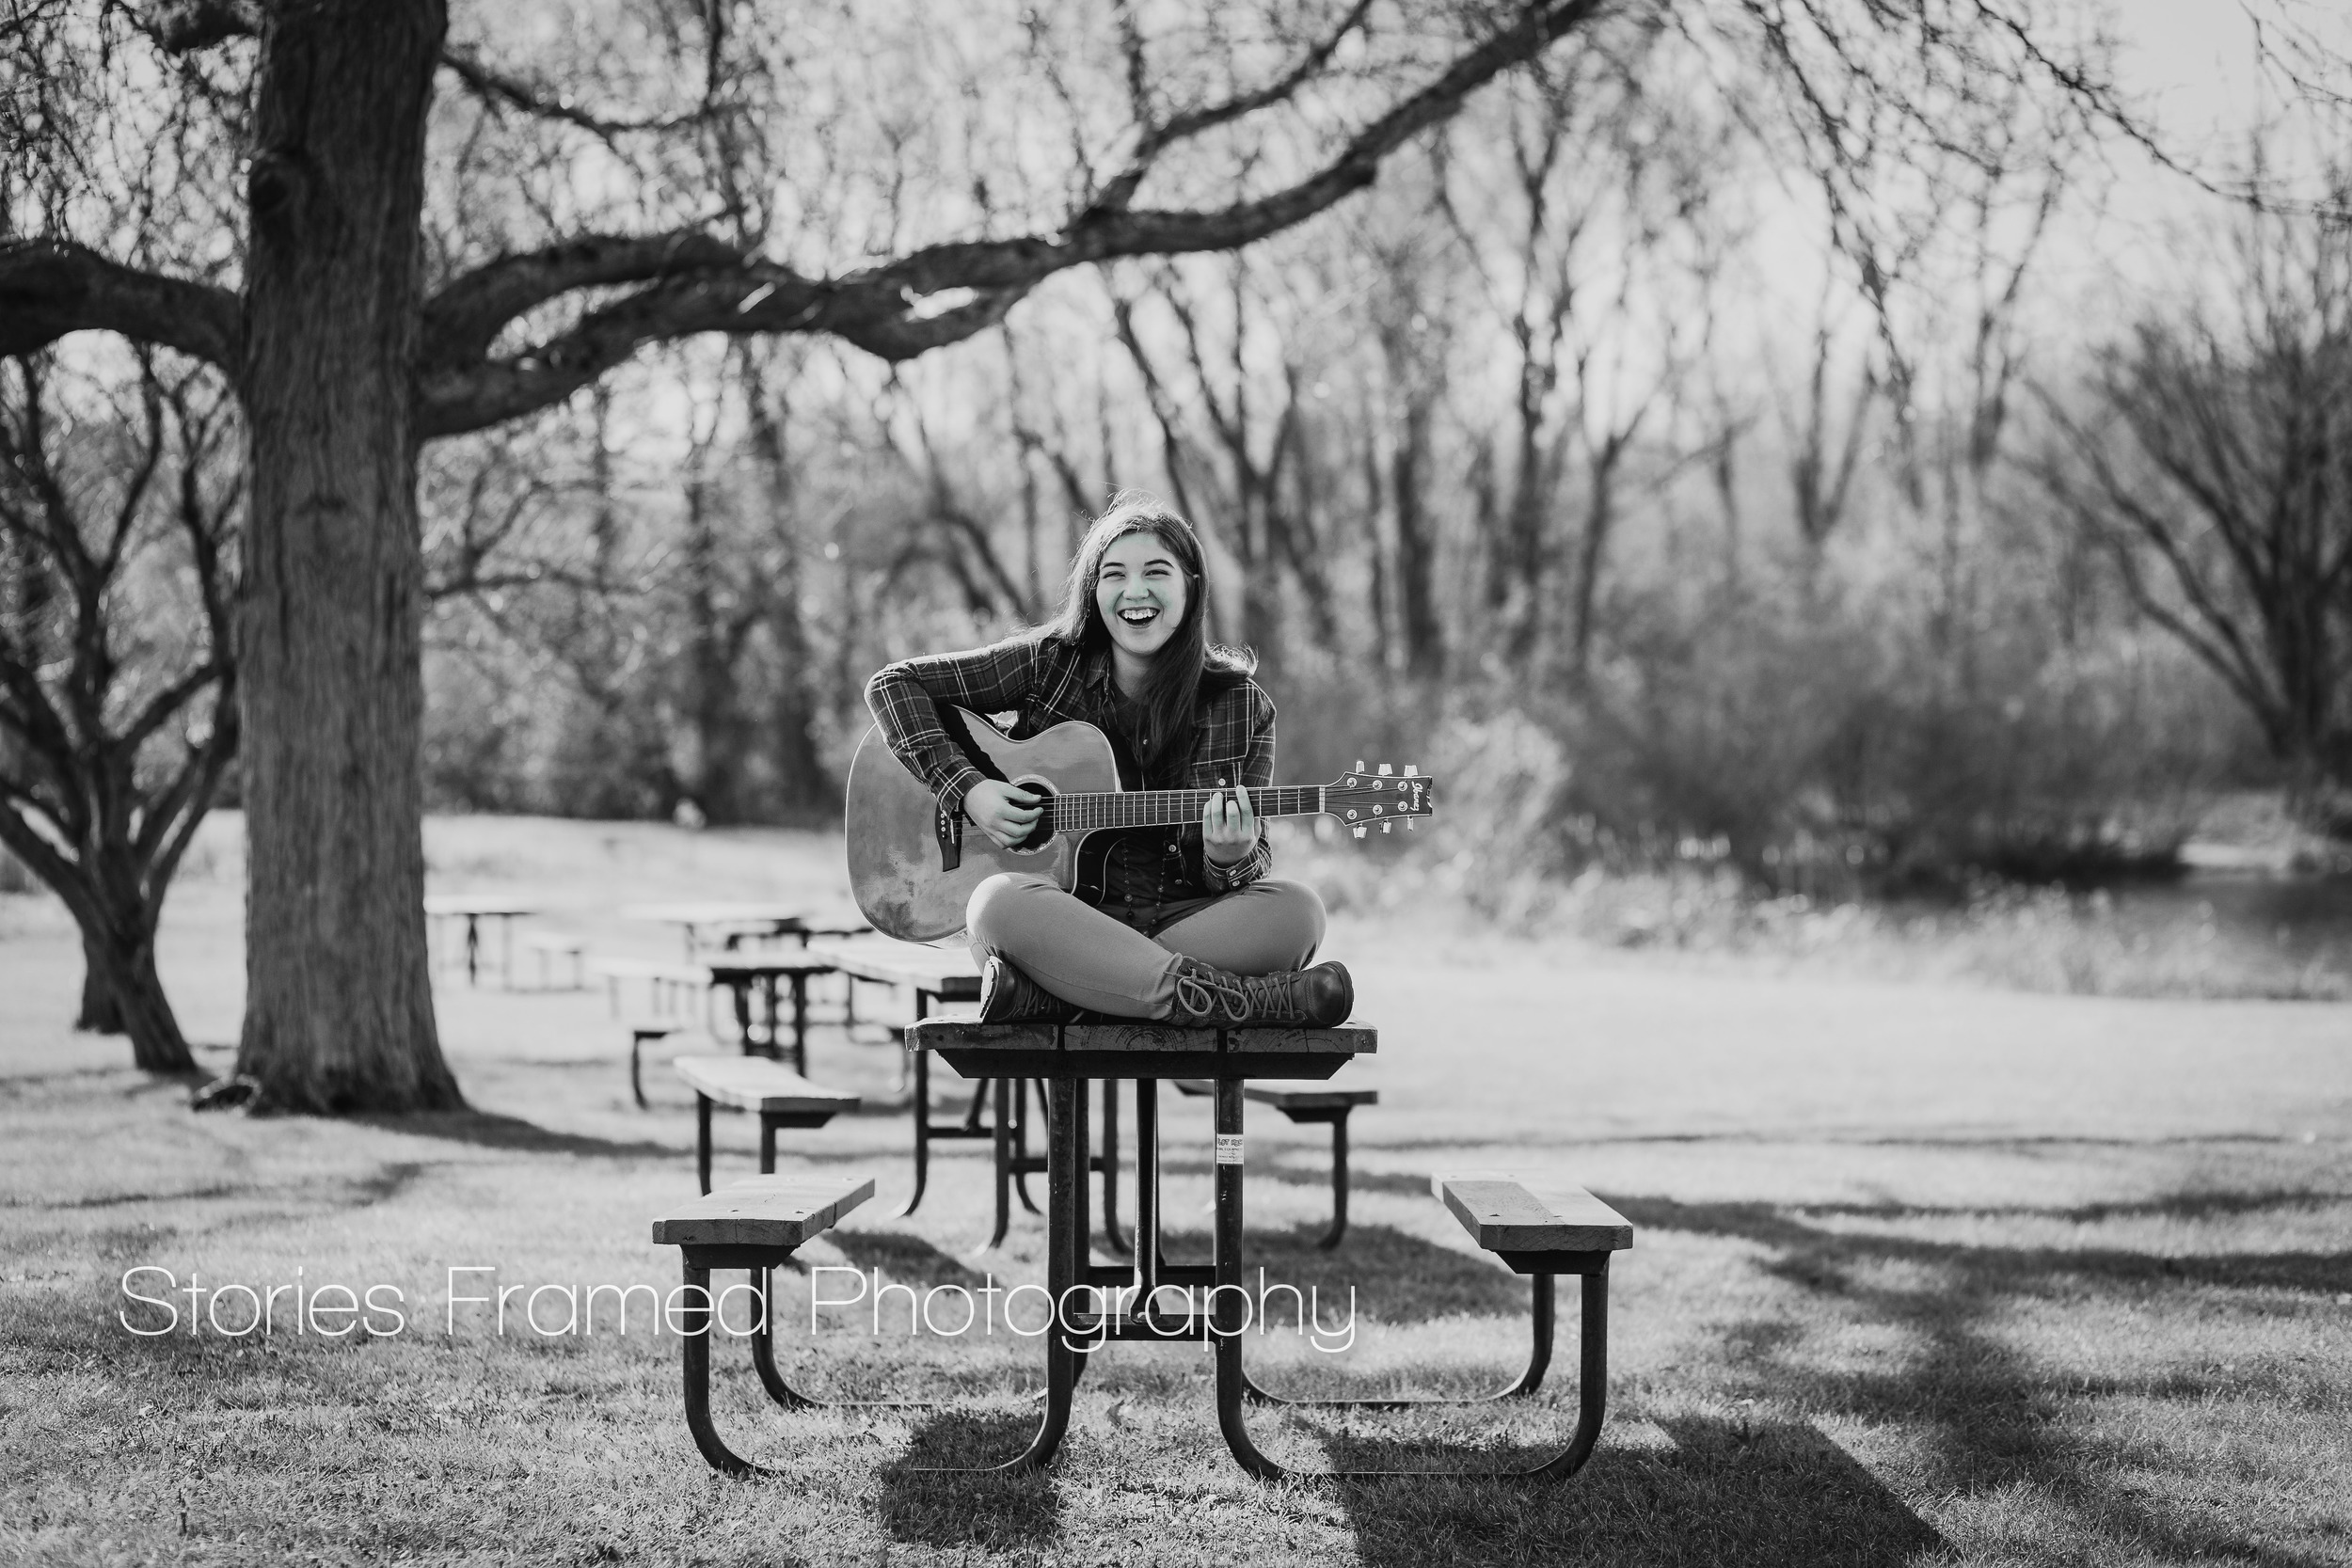 Stories Framed Photography | Mia in B&W | acoustic guitar